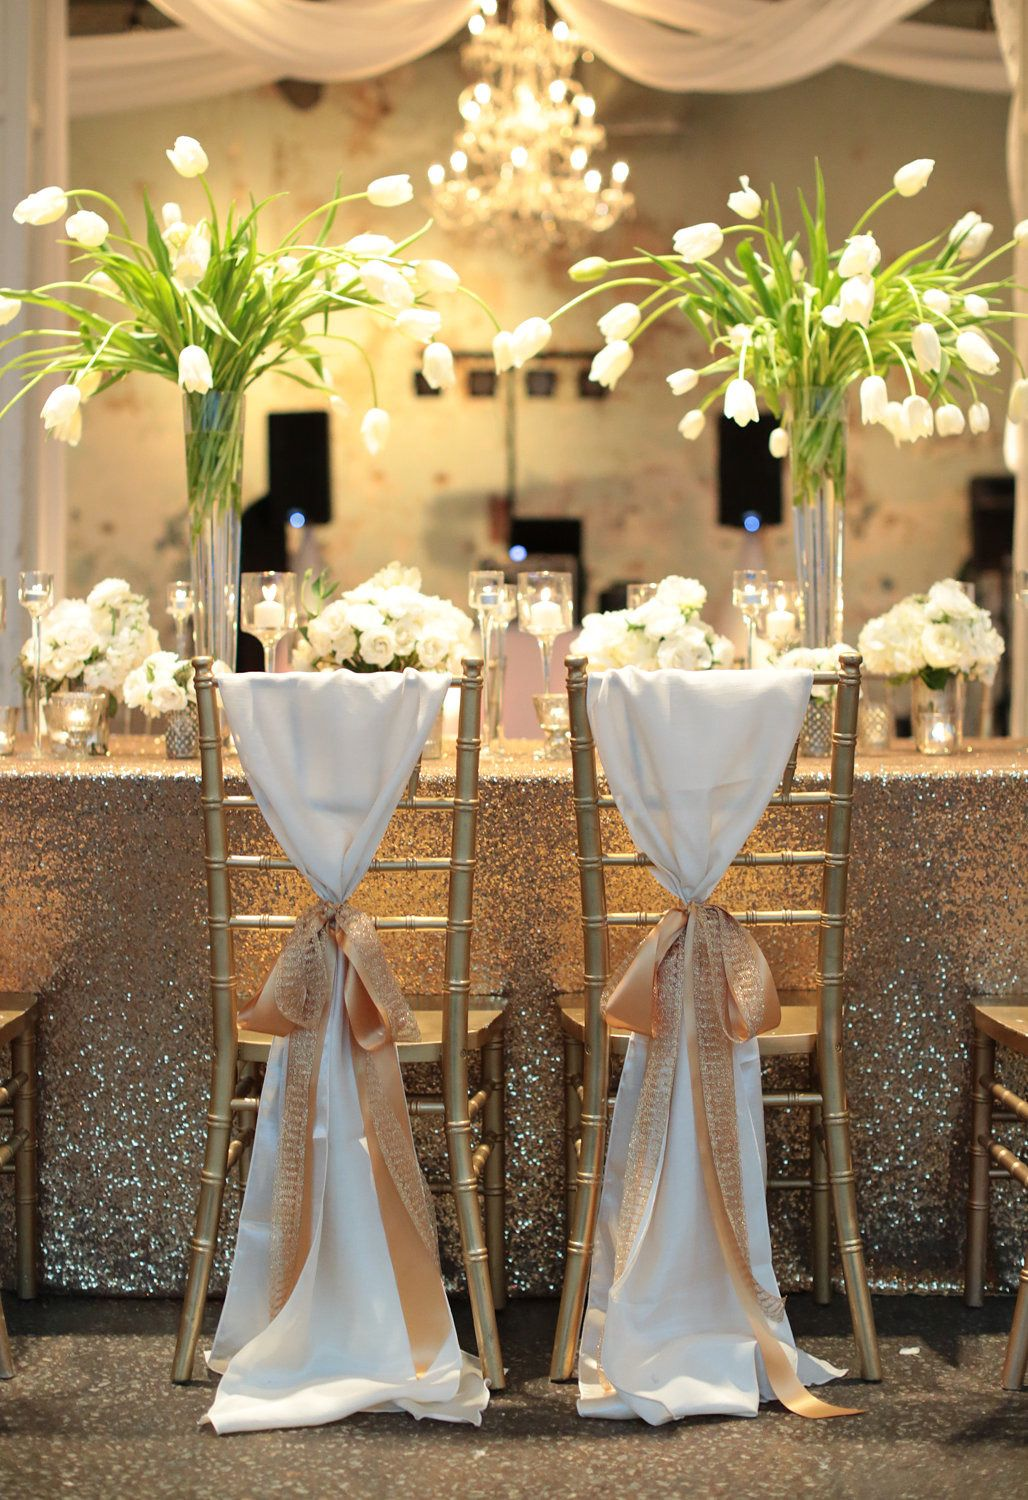 Chair Sash Decor Centerpiece Photography Landon Jacob Productions Landonjacob Read More